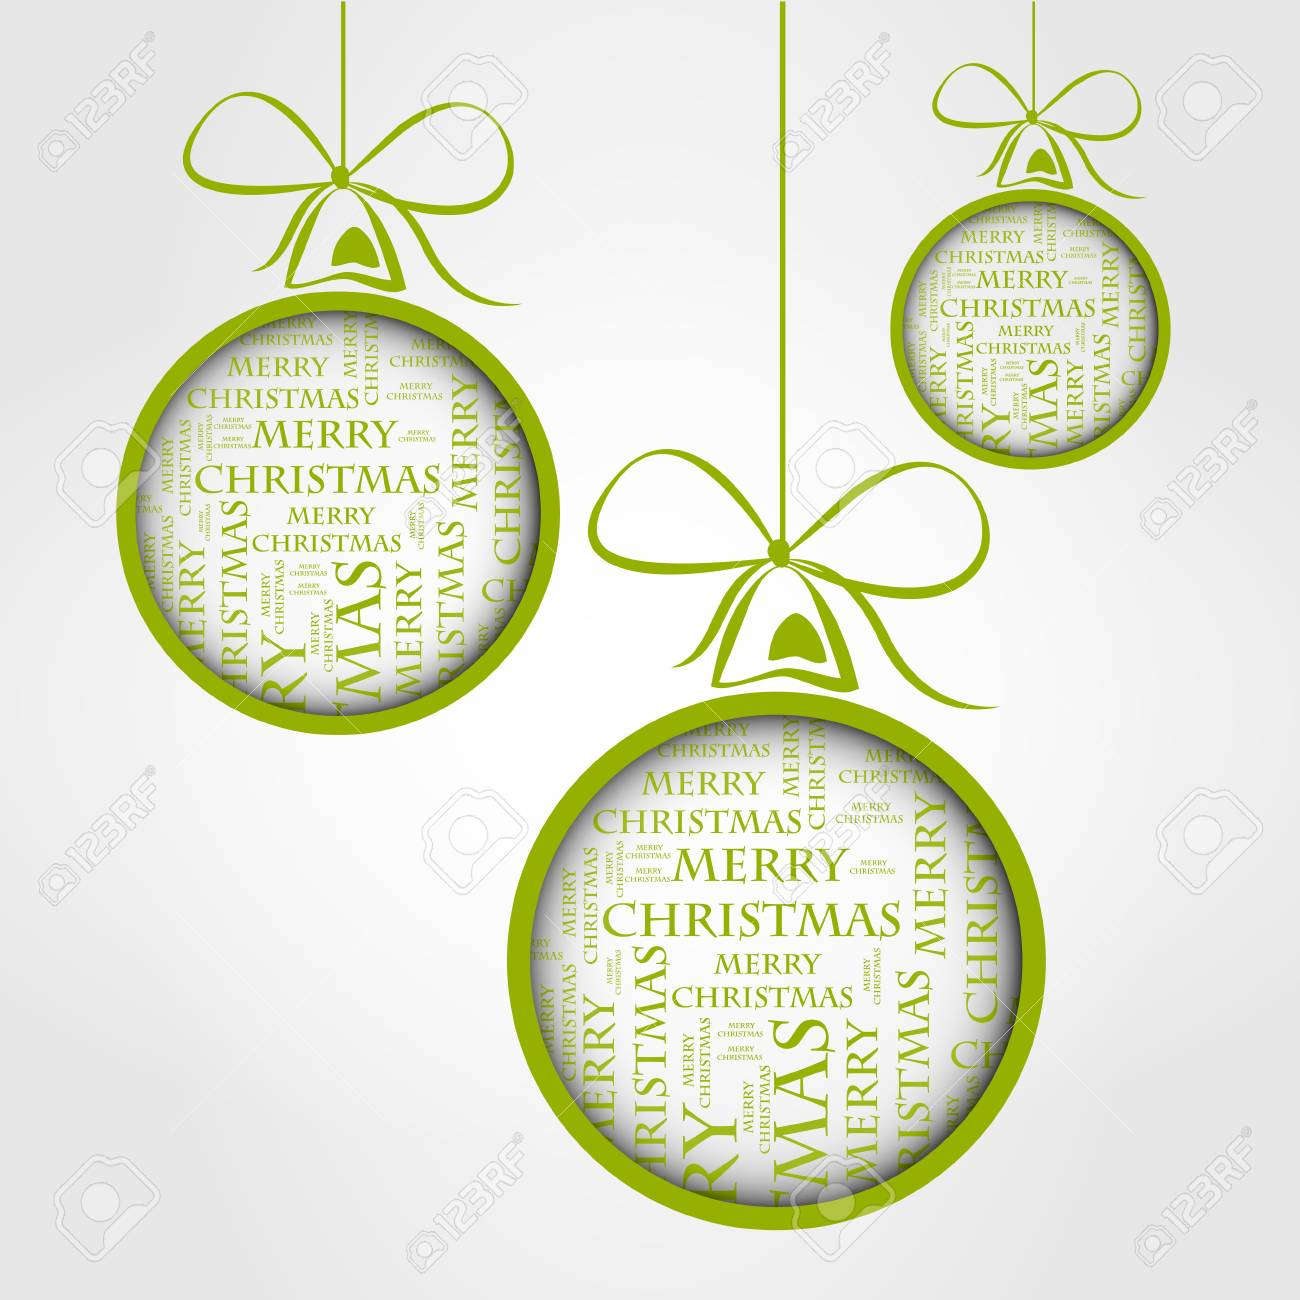 Green Merry Christmas Text Balls Royalty Free Cliparts, Vectors, And ...